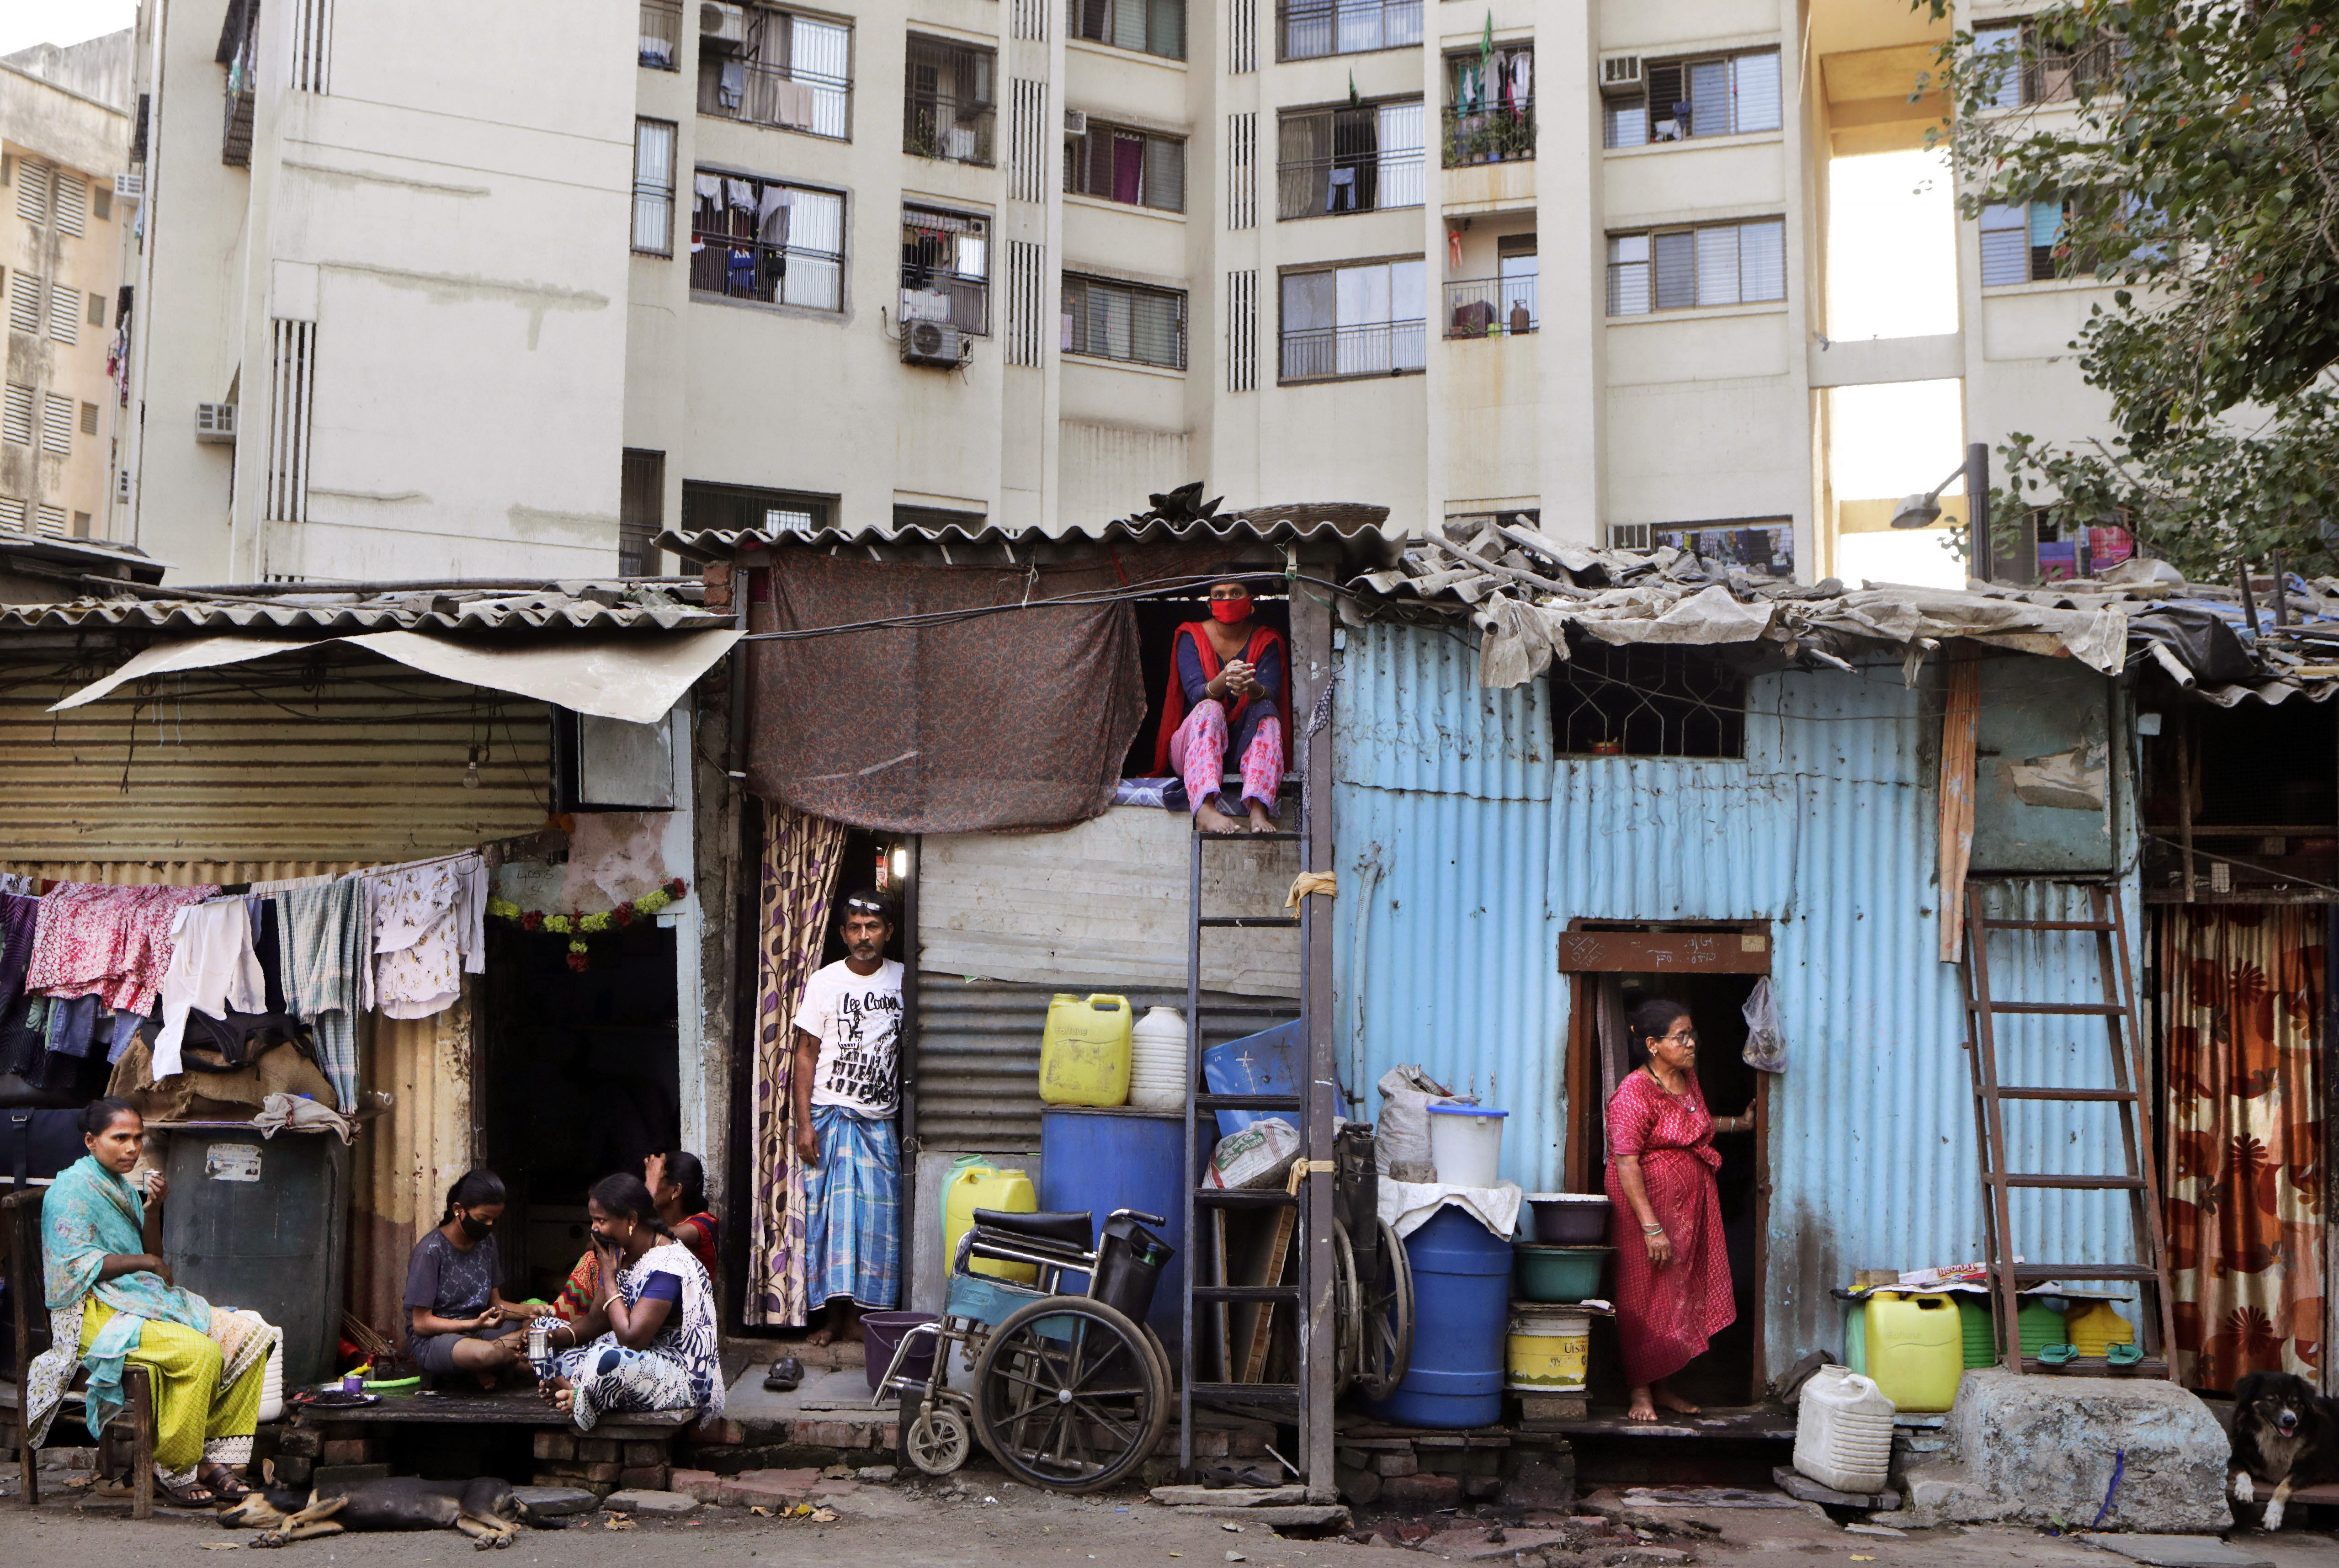 People rest by their homes in Dharavi, one of Asia's largest slums, in Mumbai, India, on April 3.